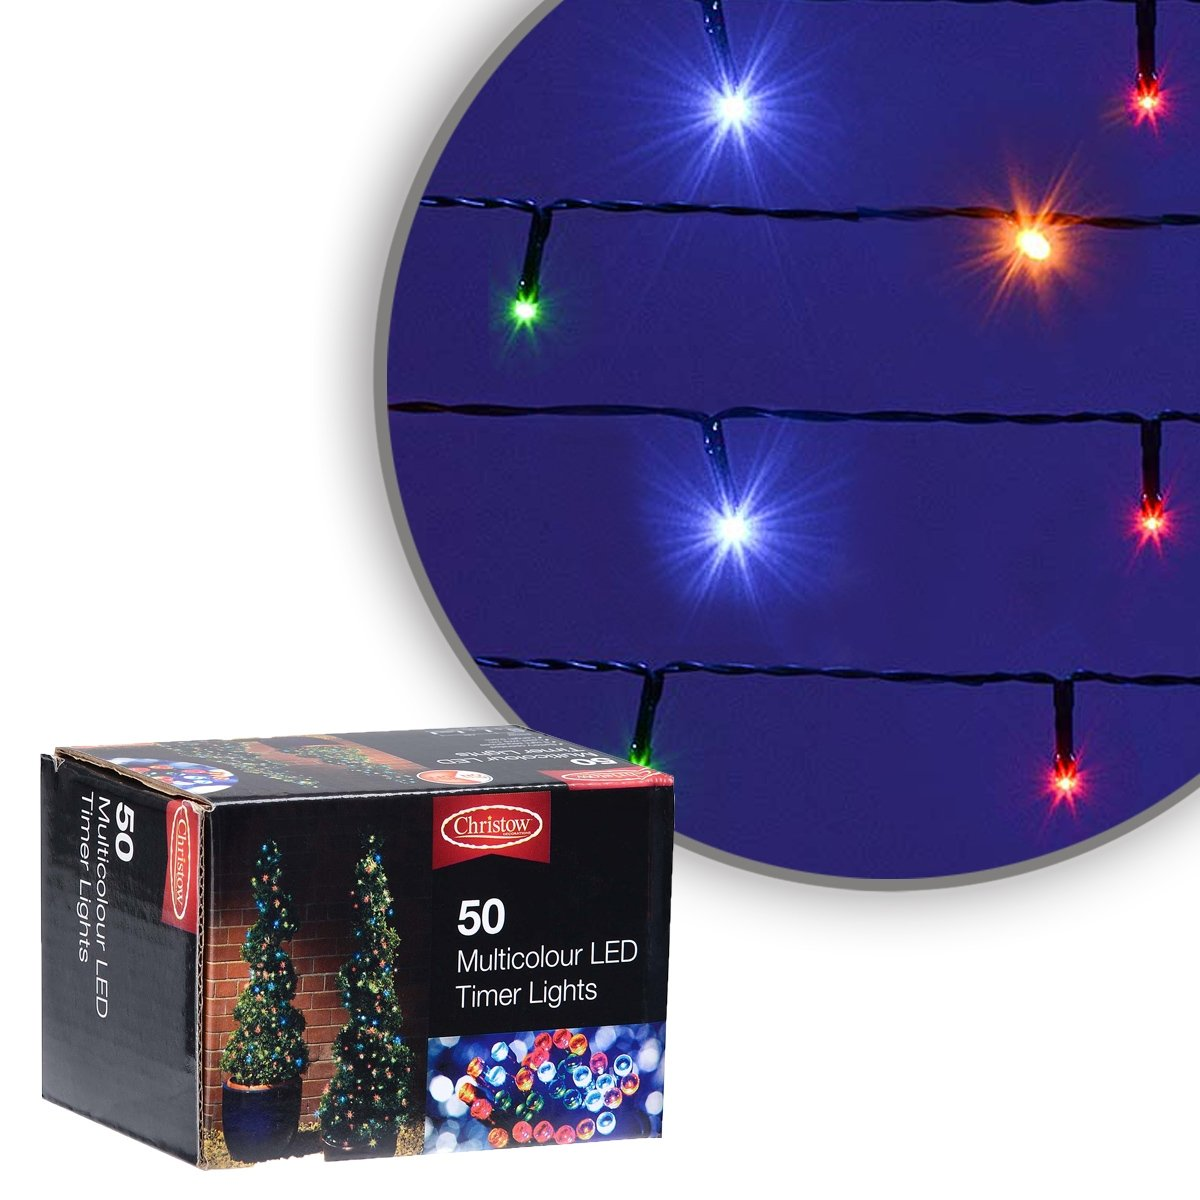 Christow Multi Coloured Led Battery Operated Christmas String Timer Colour Xmas Lights Kitchen Home